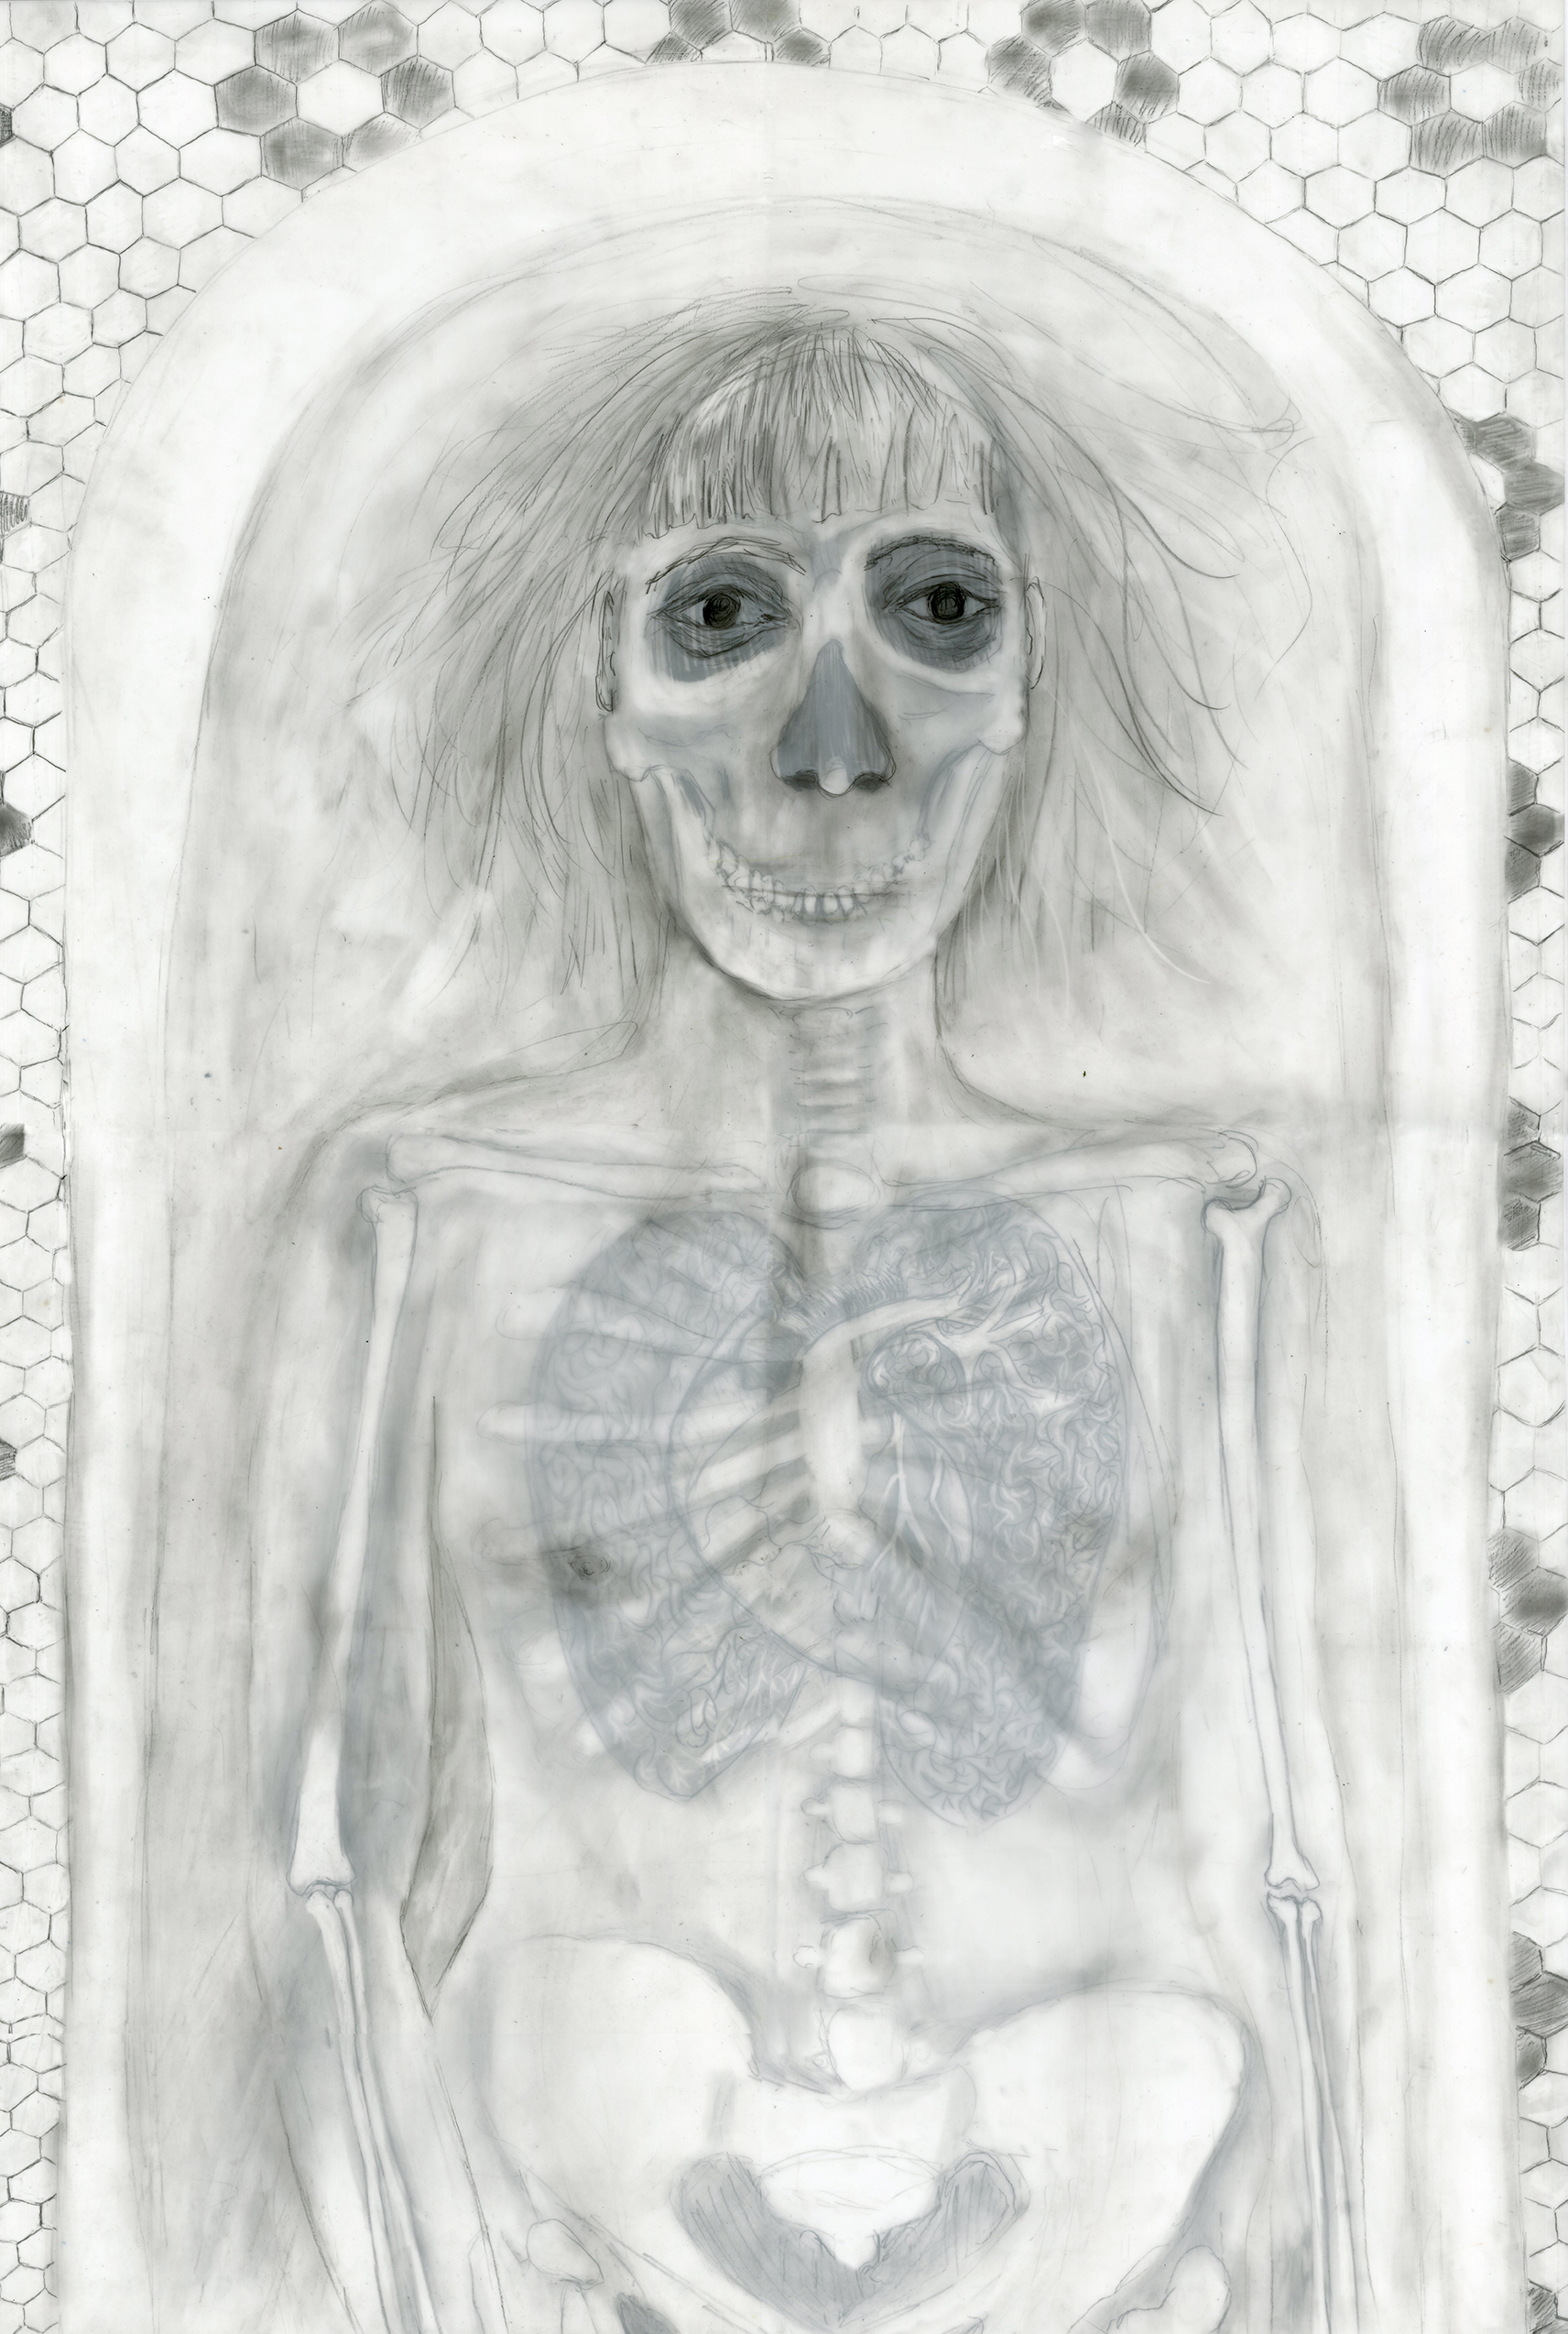 nhatt_nichols_do_you_know_who_lives_inside_you_pencil_on_three_layers_of_translucent_paper_84x119.jpg